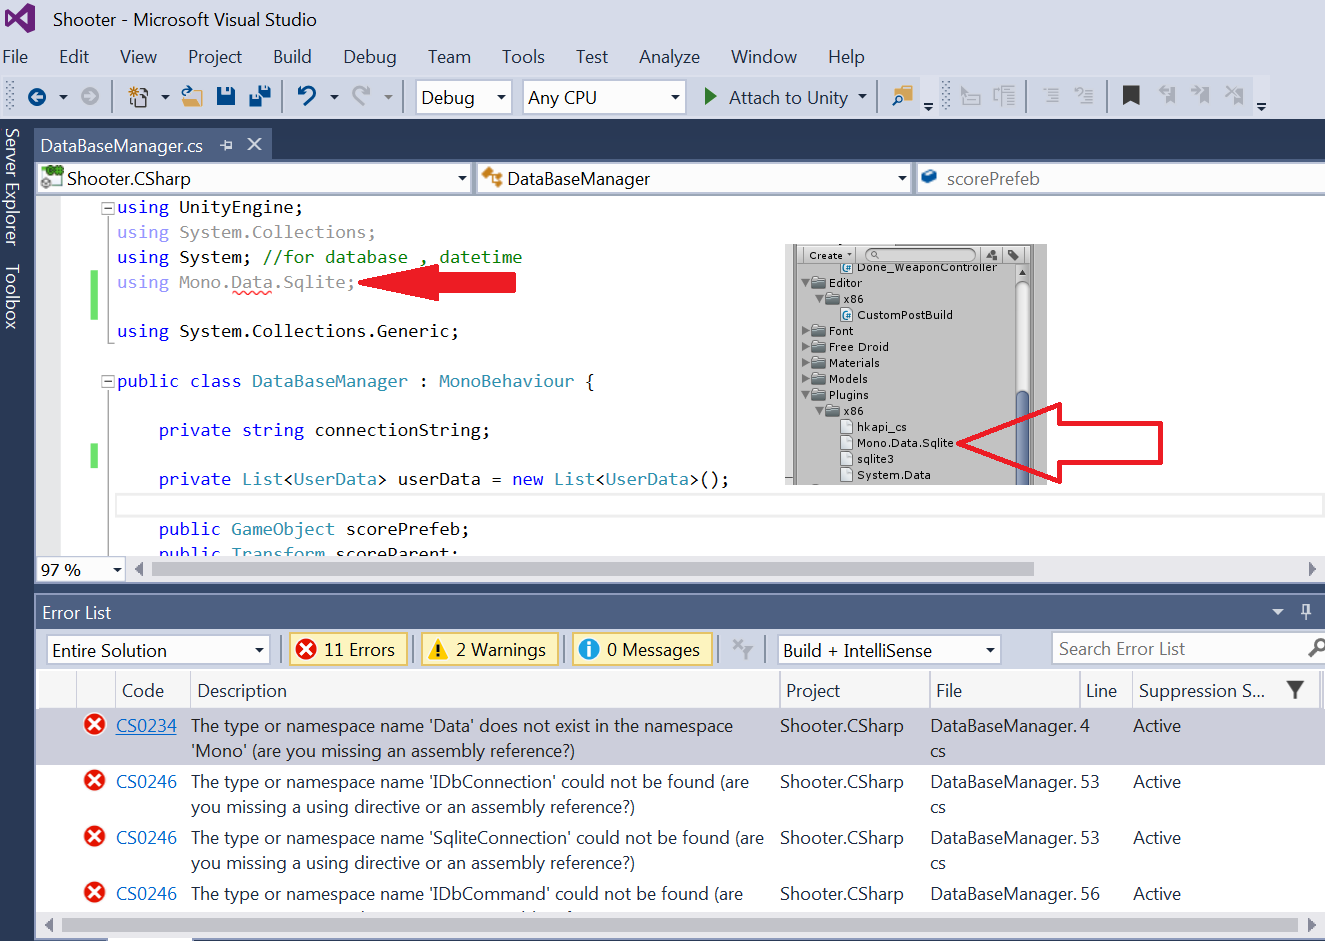 using Mono Data Sqlite missing an assembly reference